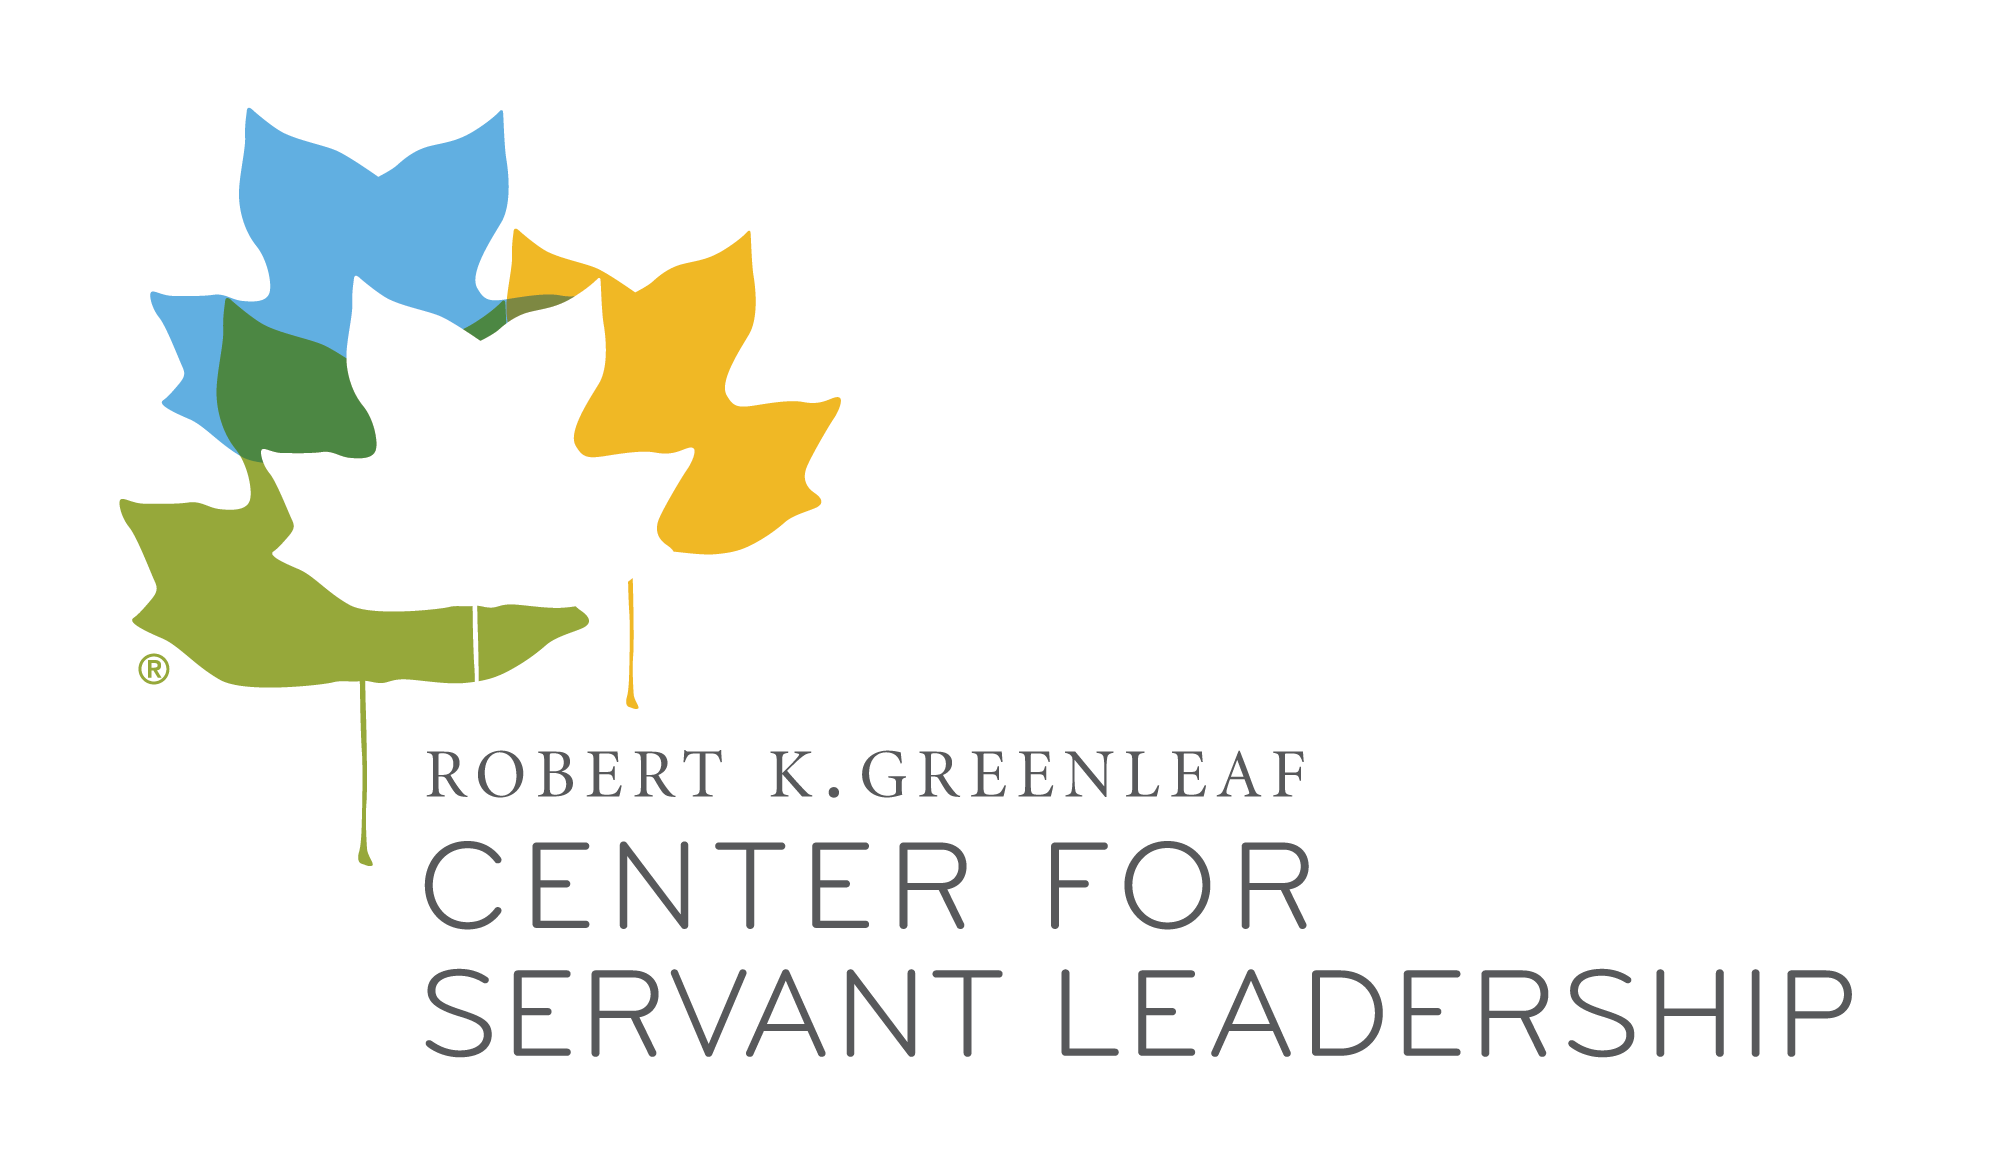 servant leadership essay the servant as leader greenleaf center the servant as leader greenleaf center for servant leadershipgreenleaf center for servant leadership